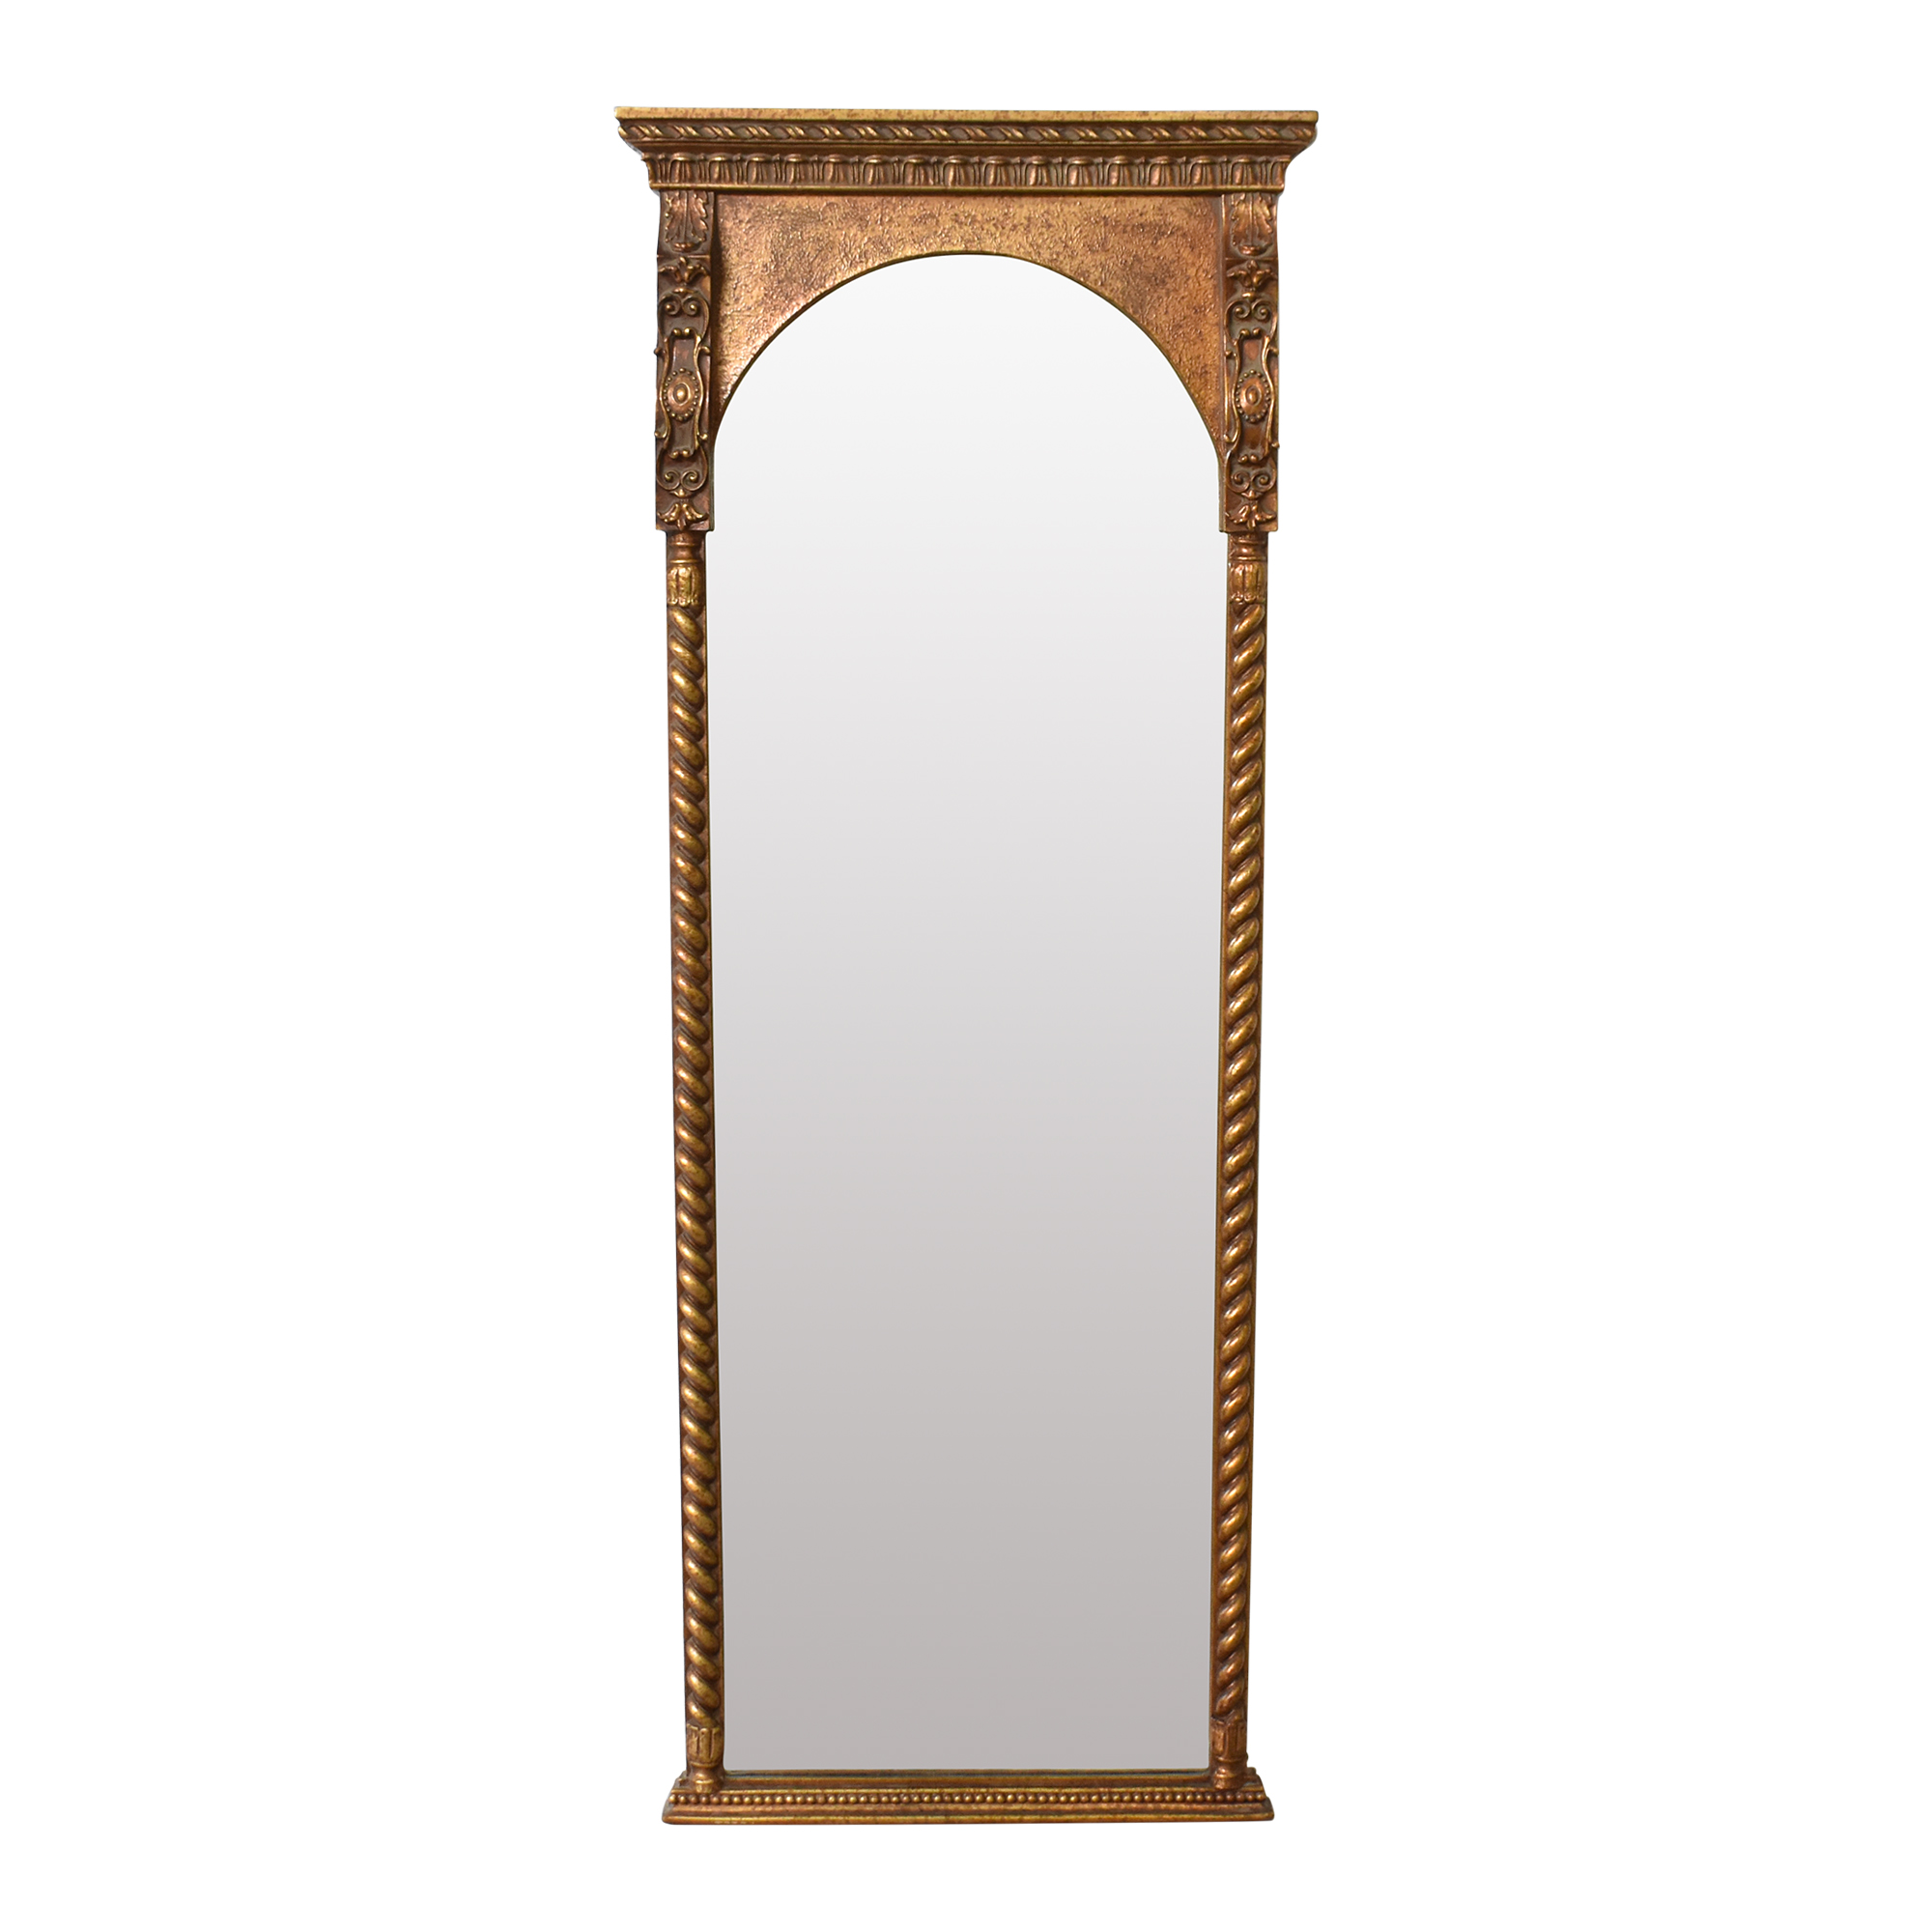 22 Off Vintage Wall Mirror Decor